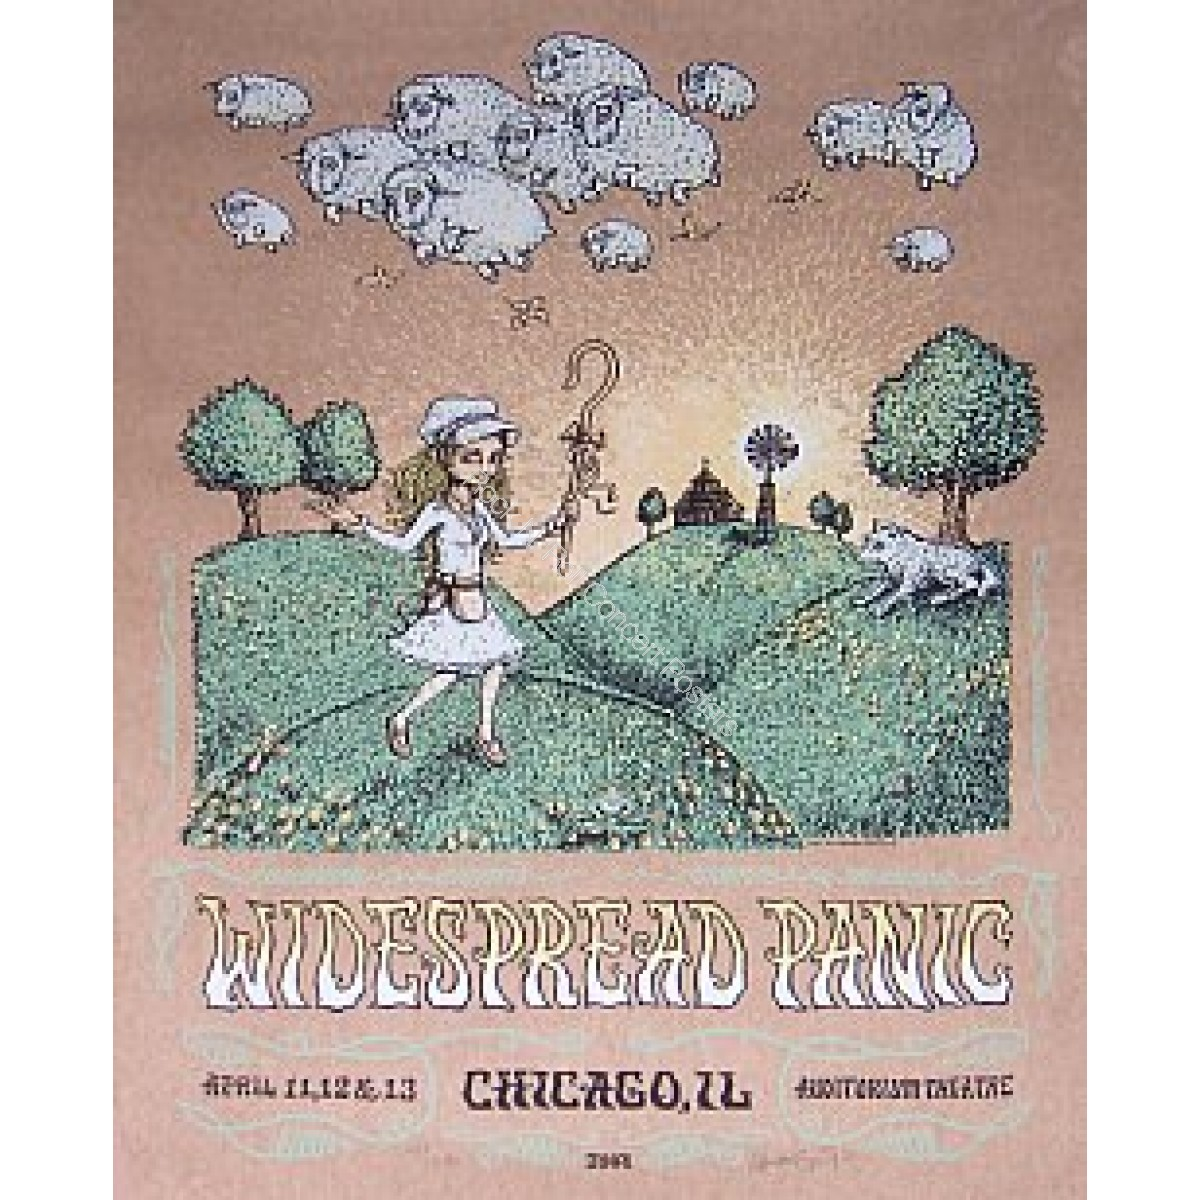 Widespread Panic @ The Chicago Theatre 2008 By Marq Spusta